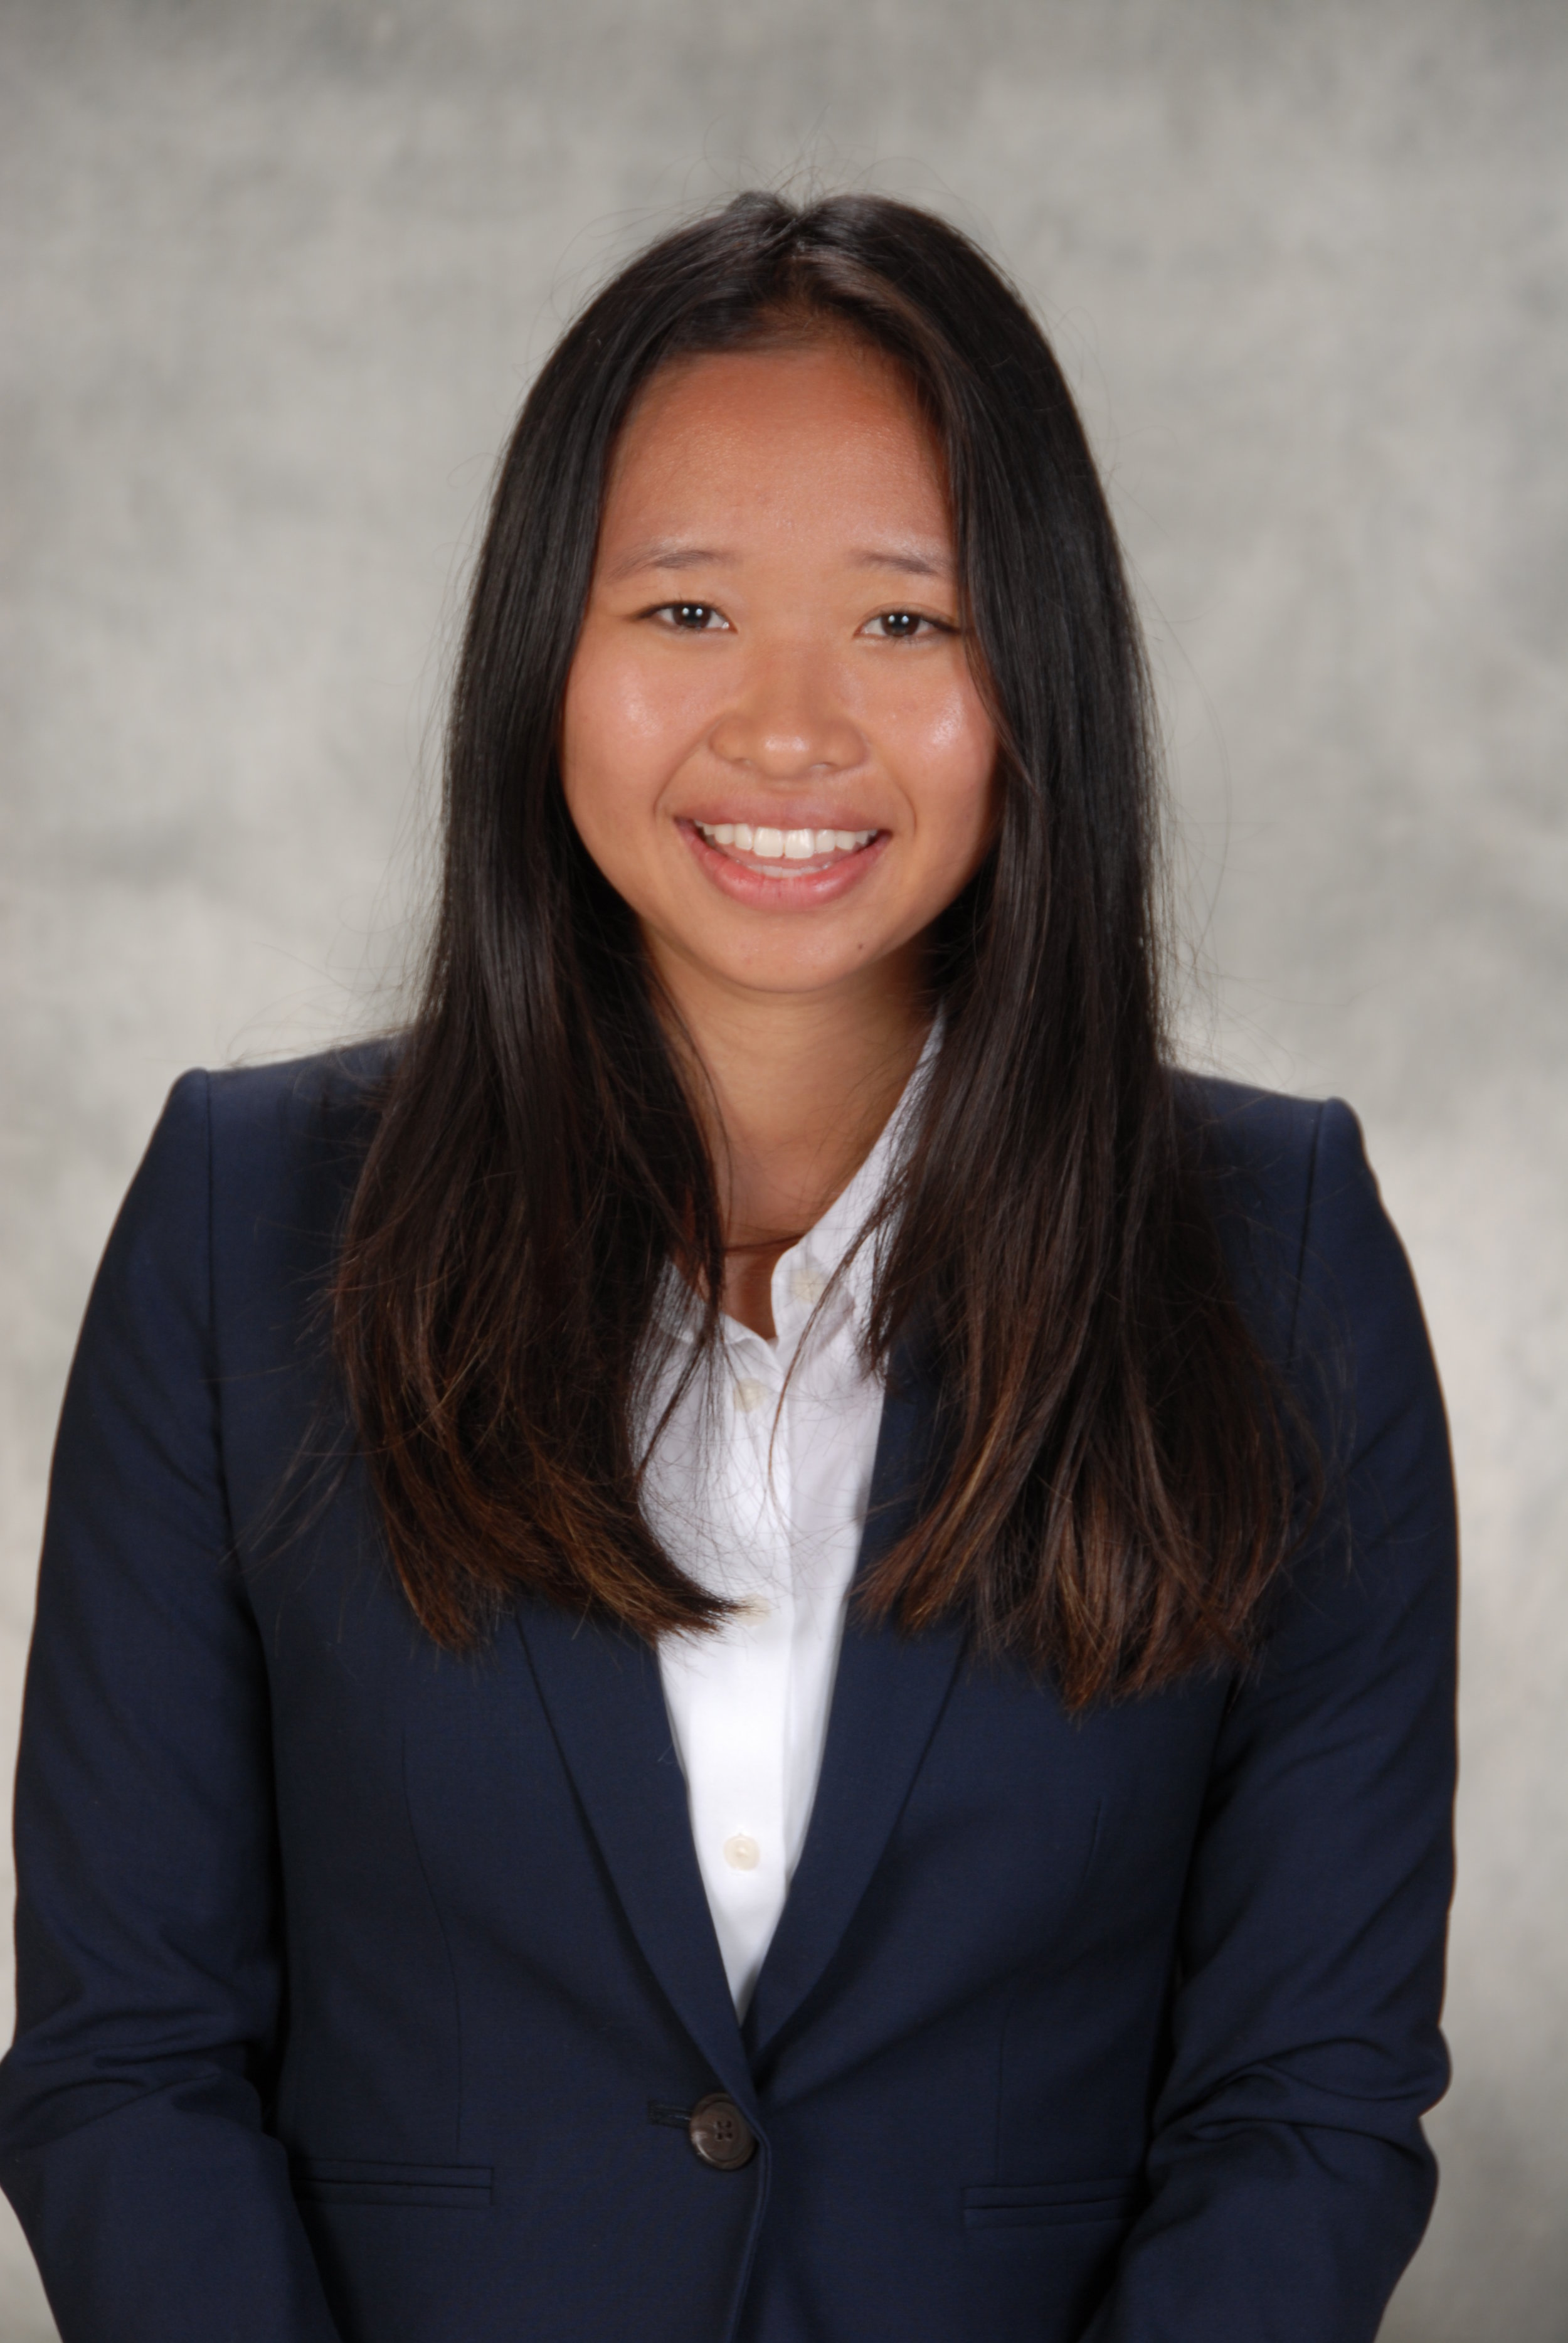 Katie Nguyen - VP of Public Affairs